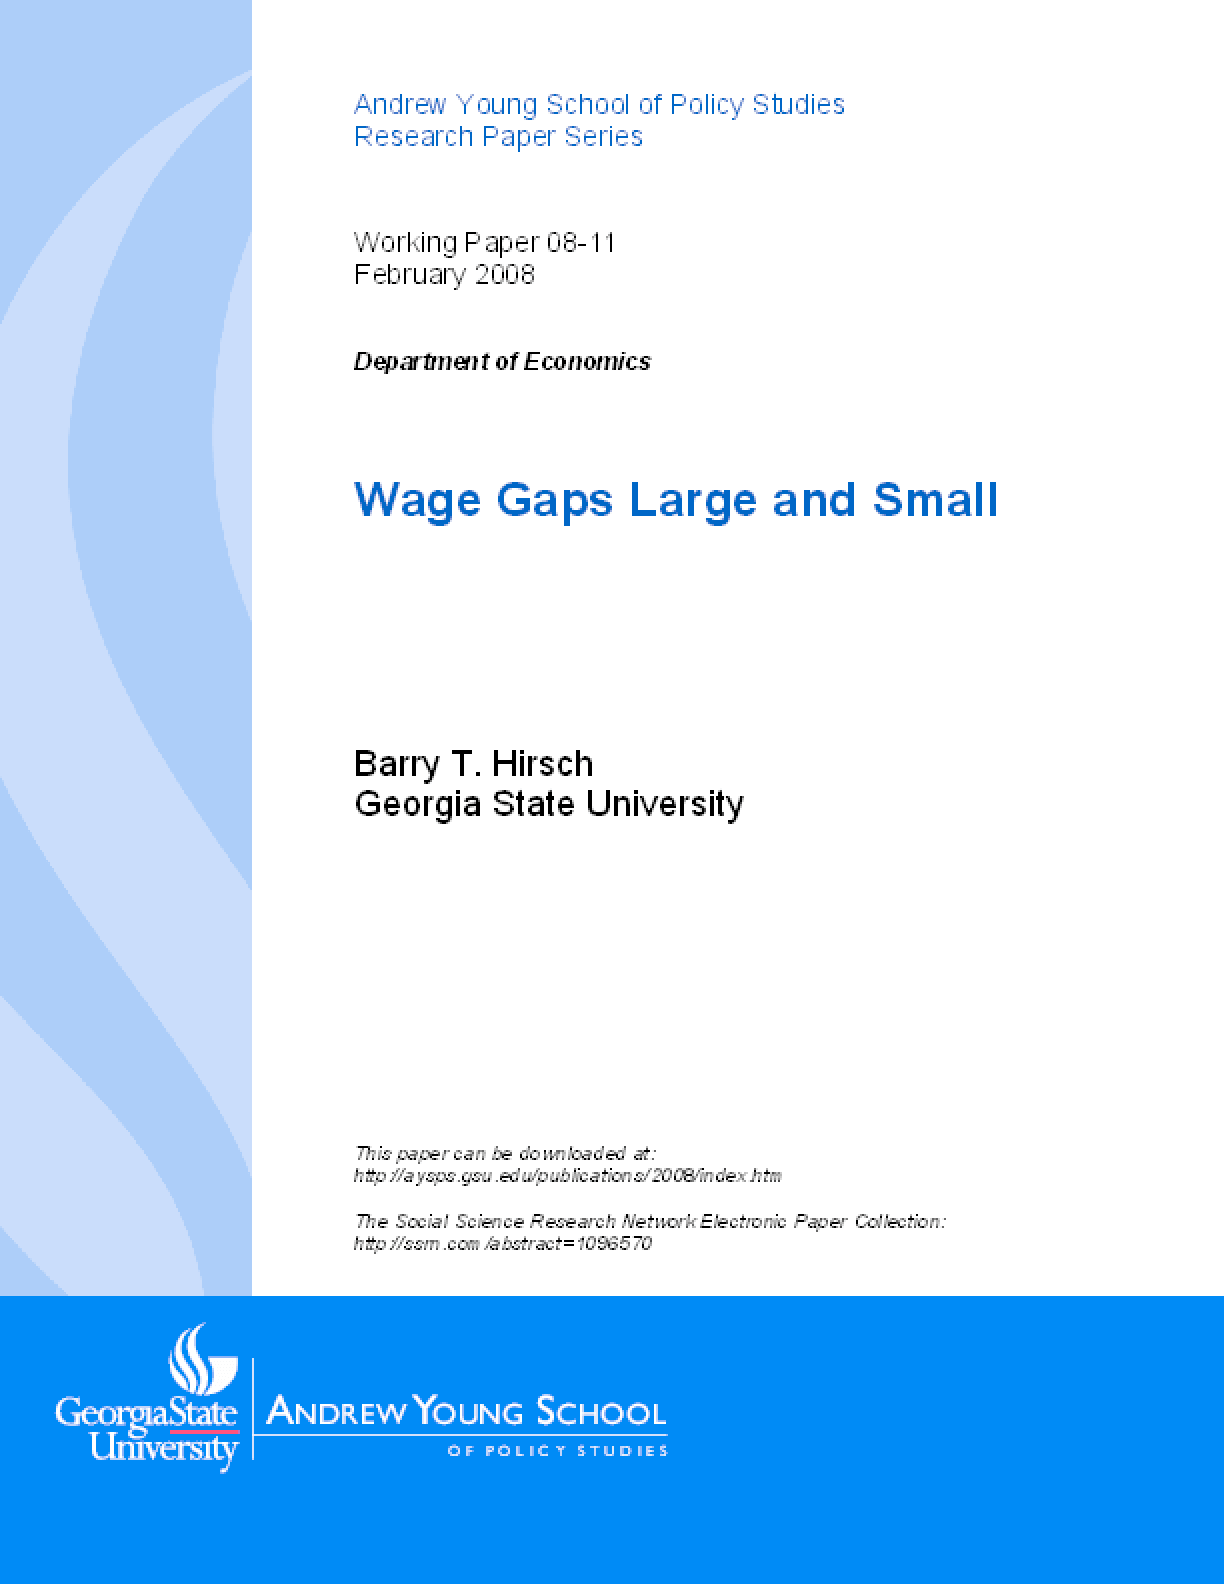 Wage Gaps Large and Small